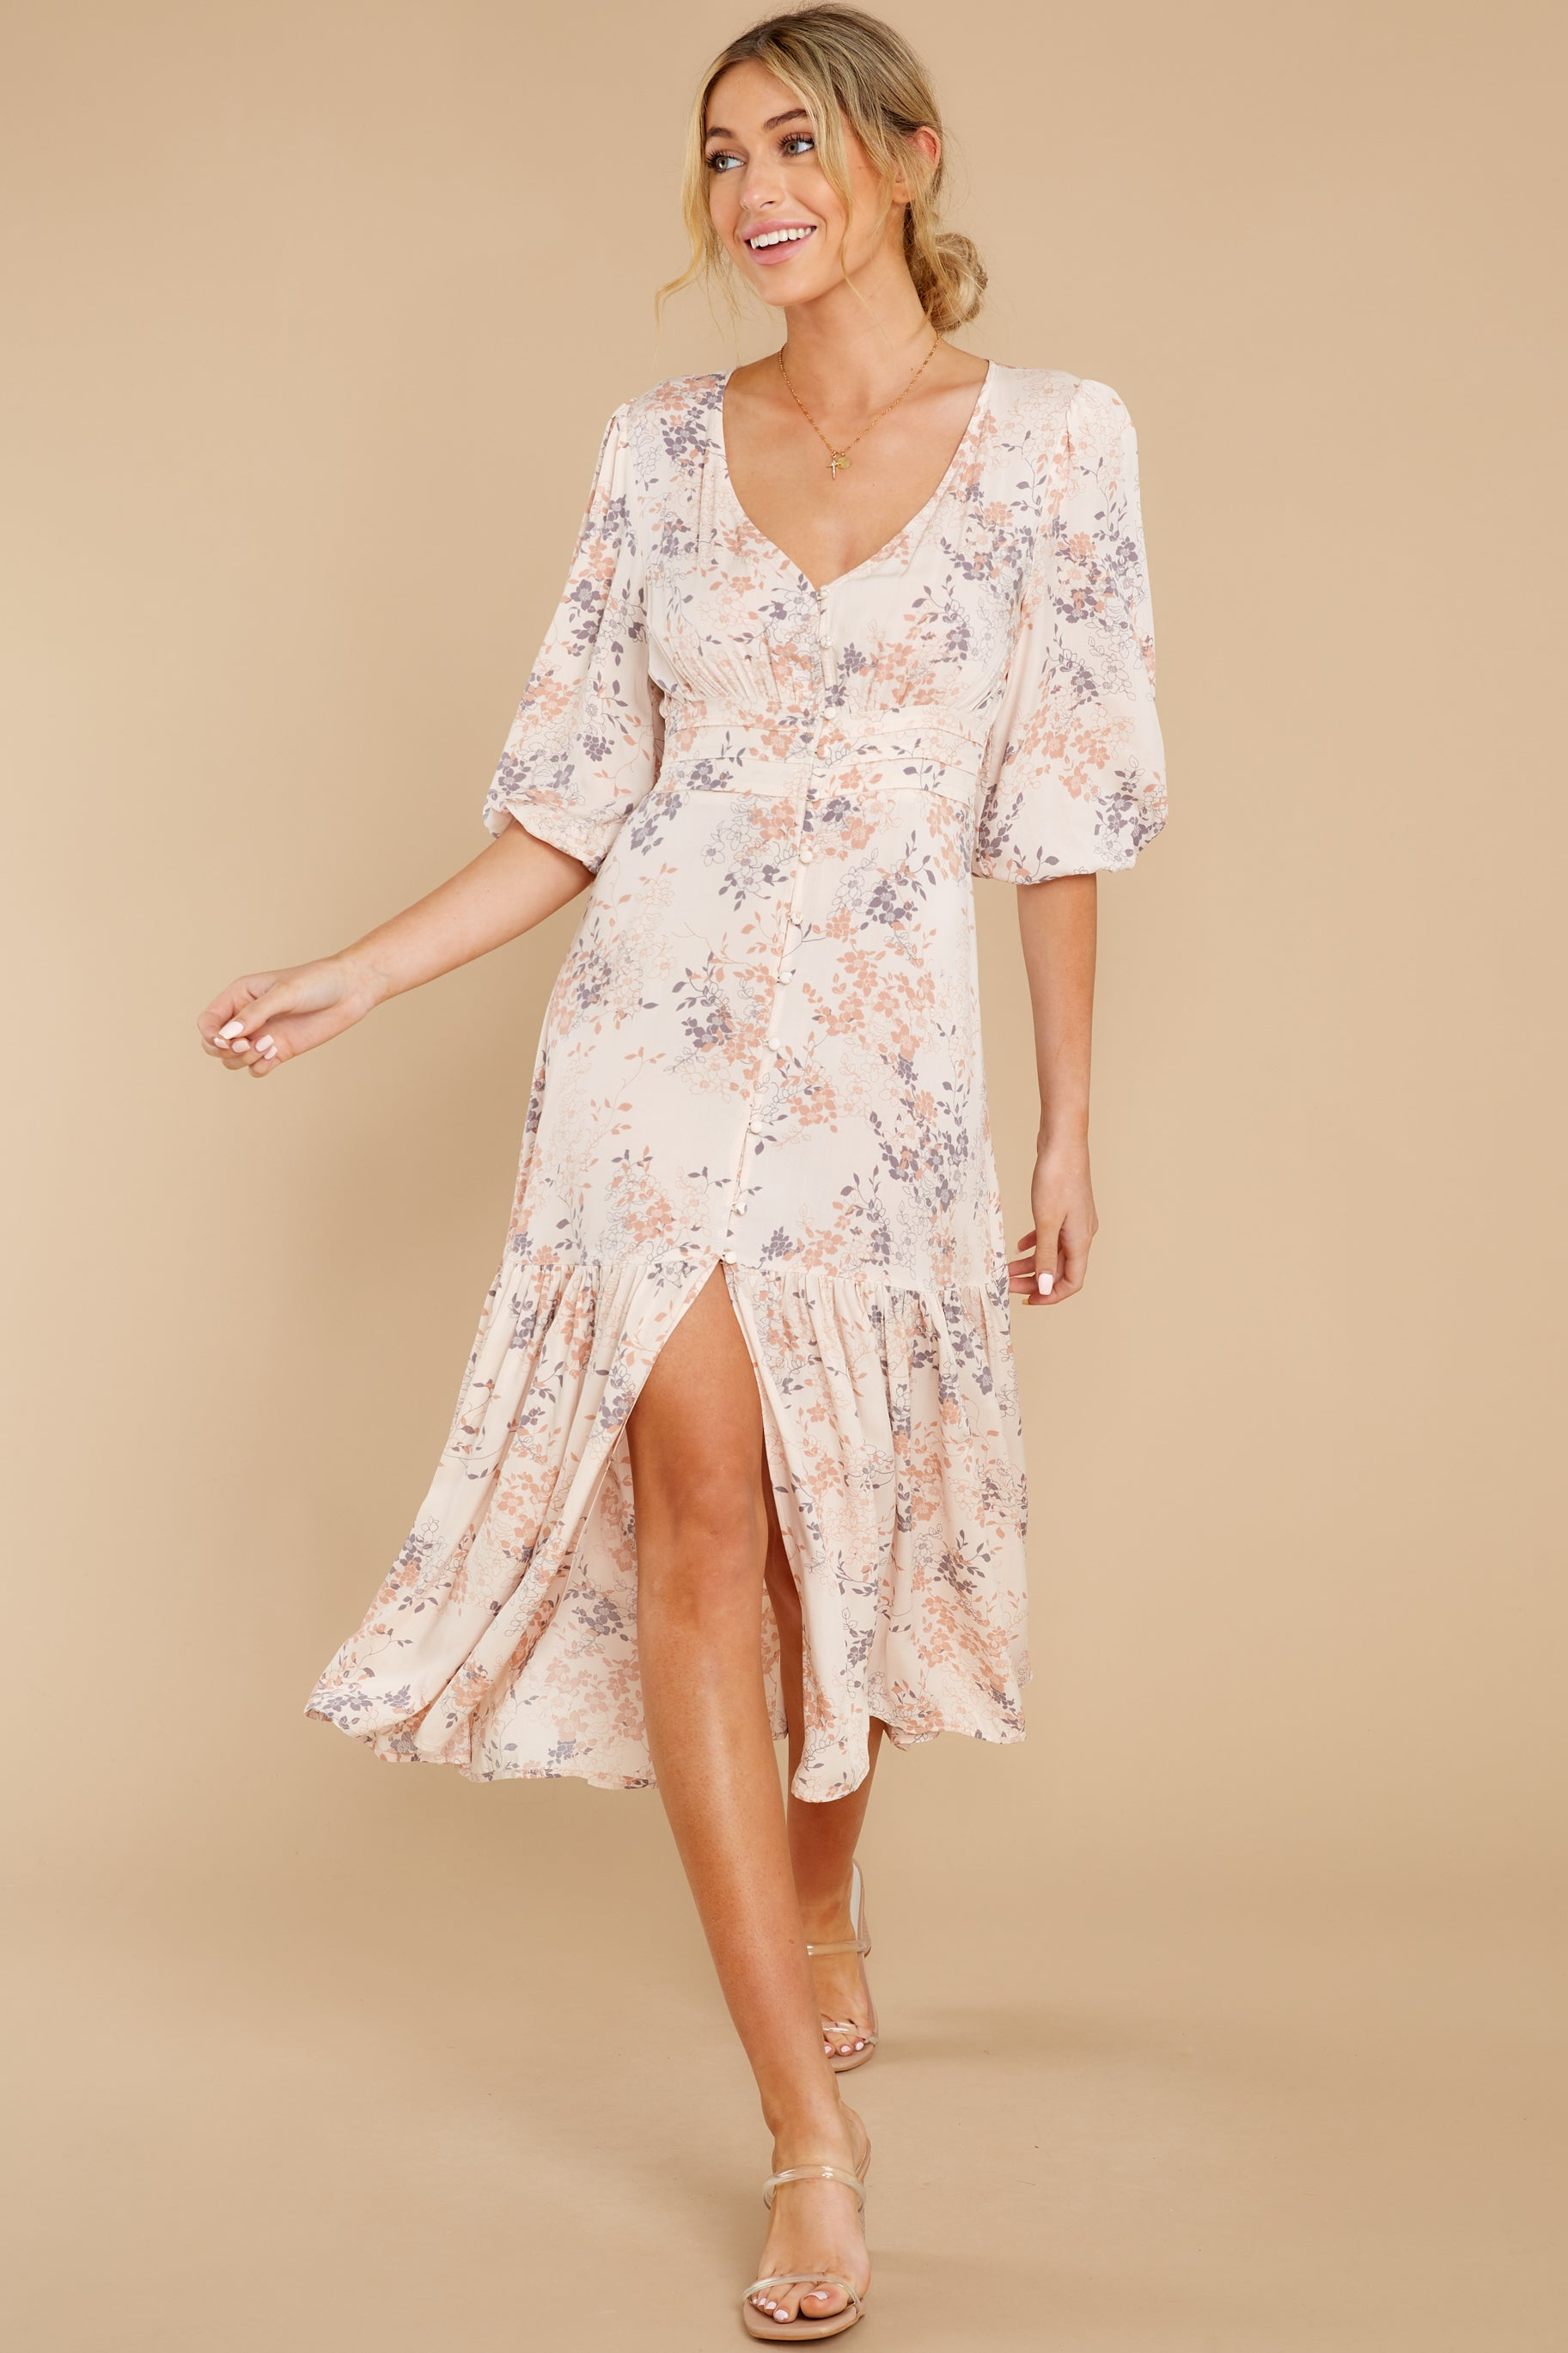 6 Love You More Blush Floral Print Maxi Dress at reddress.com